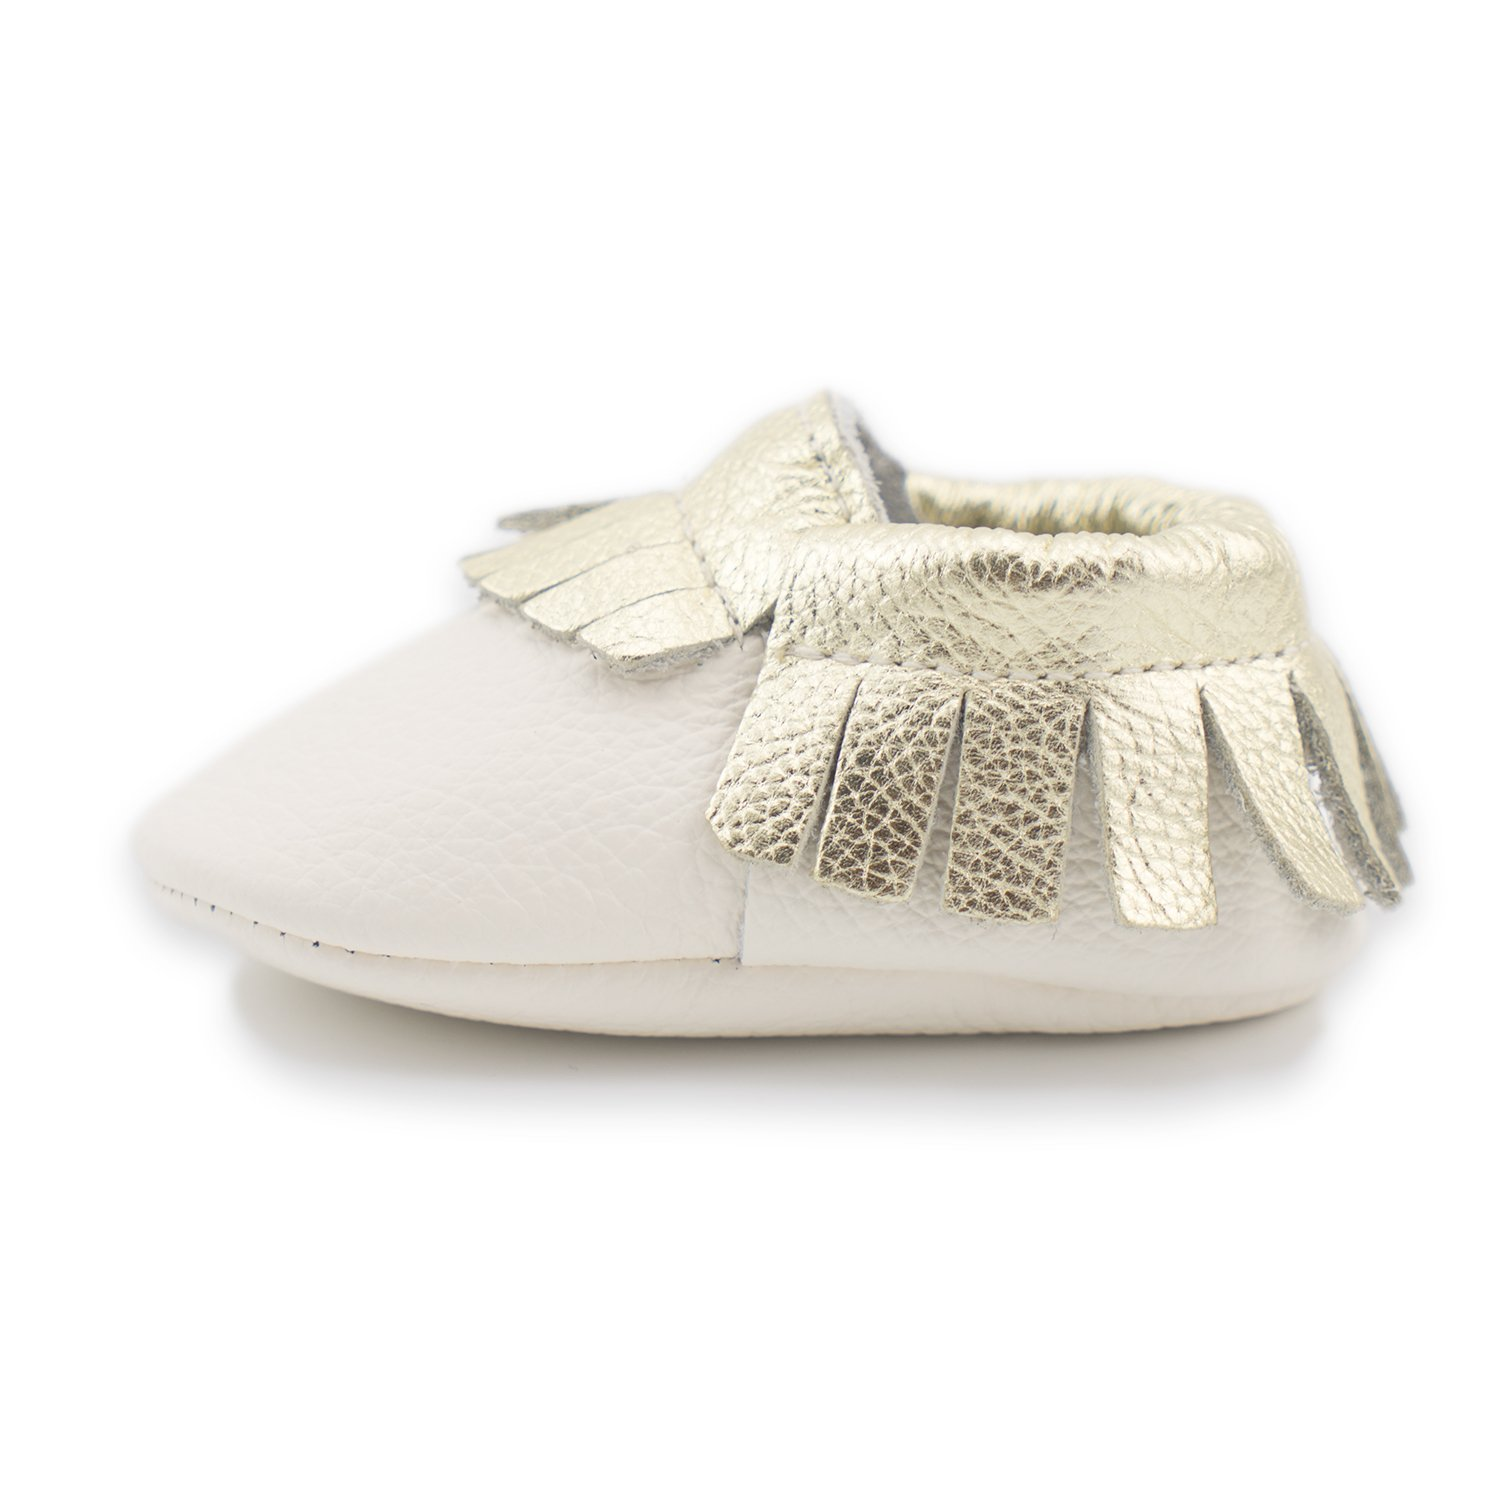 25dba49ad1d8 CoCoCute Baby Moccasins Soft Leather Sole Infant Shoes and Toddler  Moccasins for Boys and Girls (0-6 Month